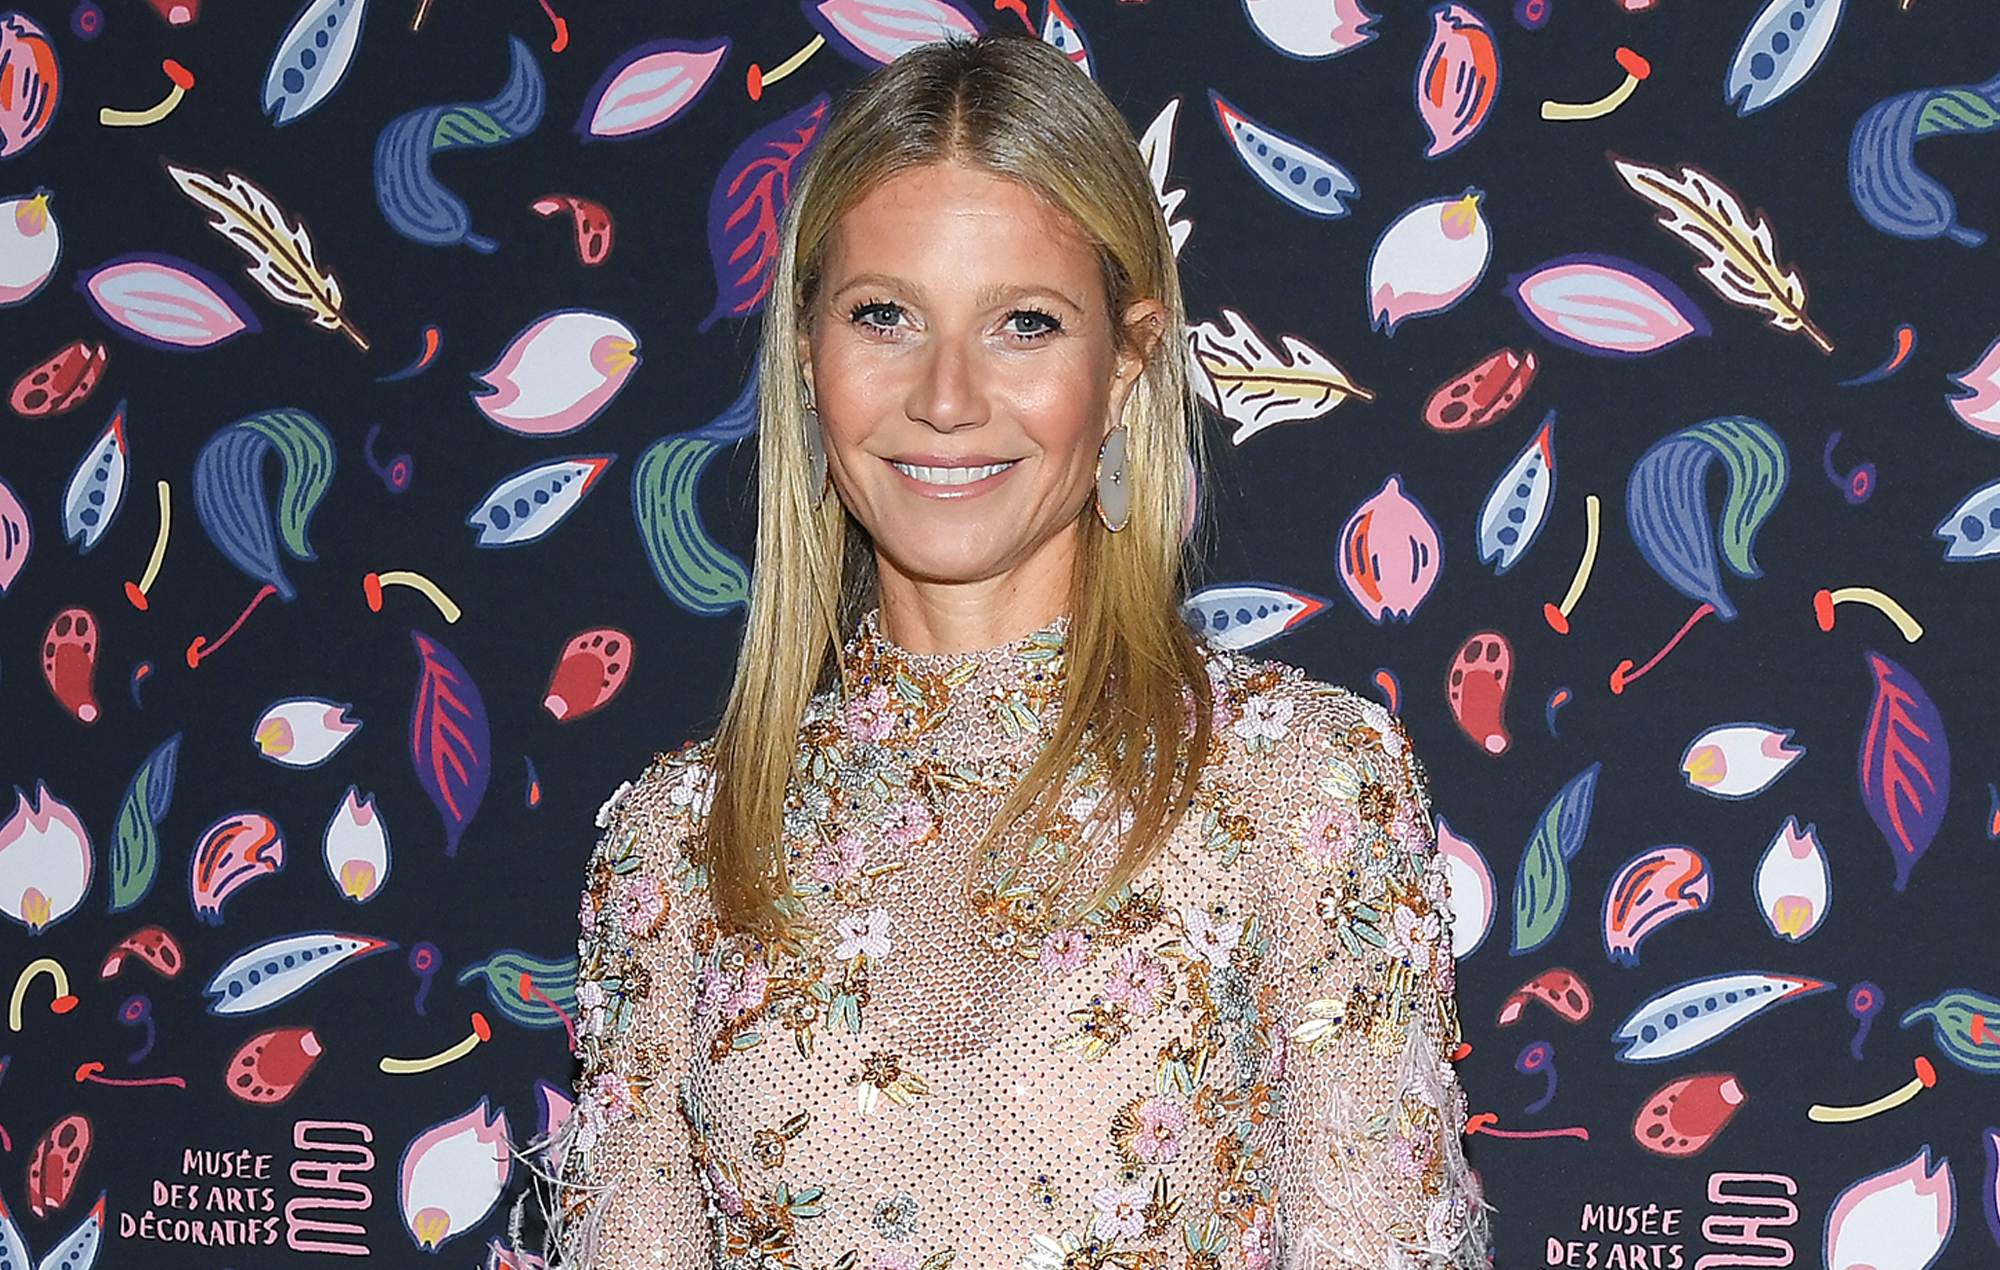 """NHS boss advises caution over Gwyneth Paltrow's COVID """"fasting"""" regime"""